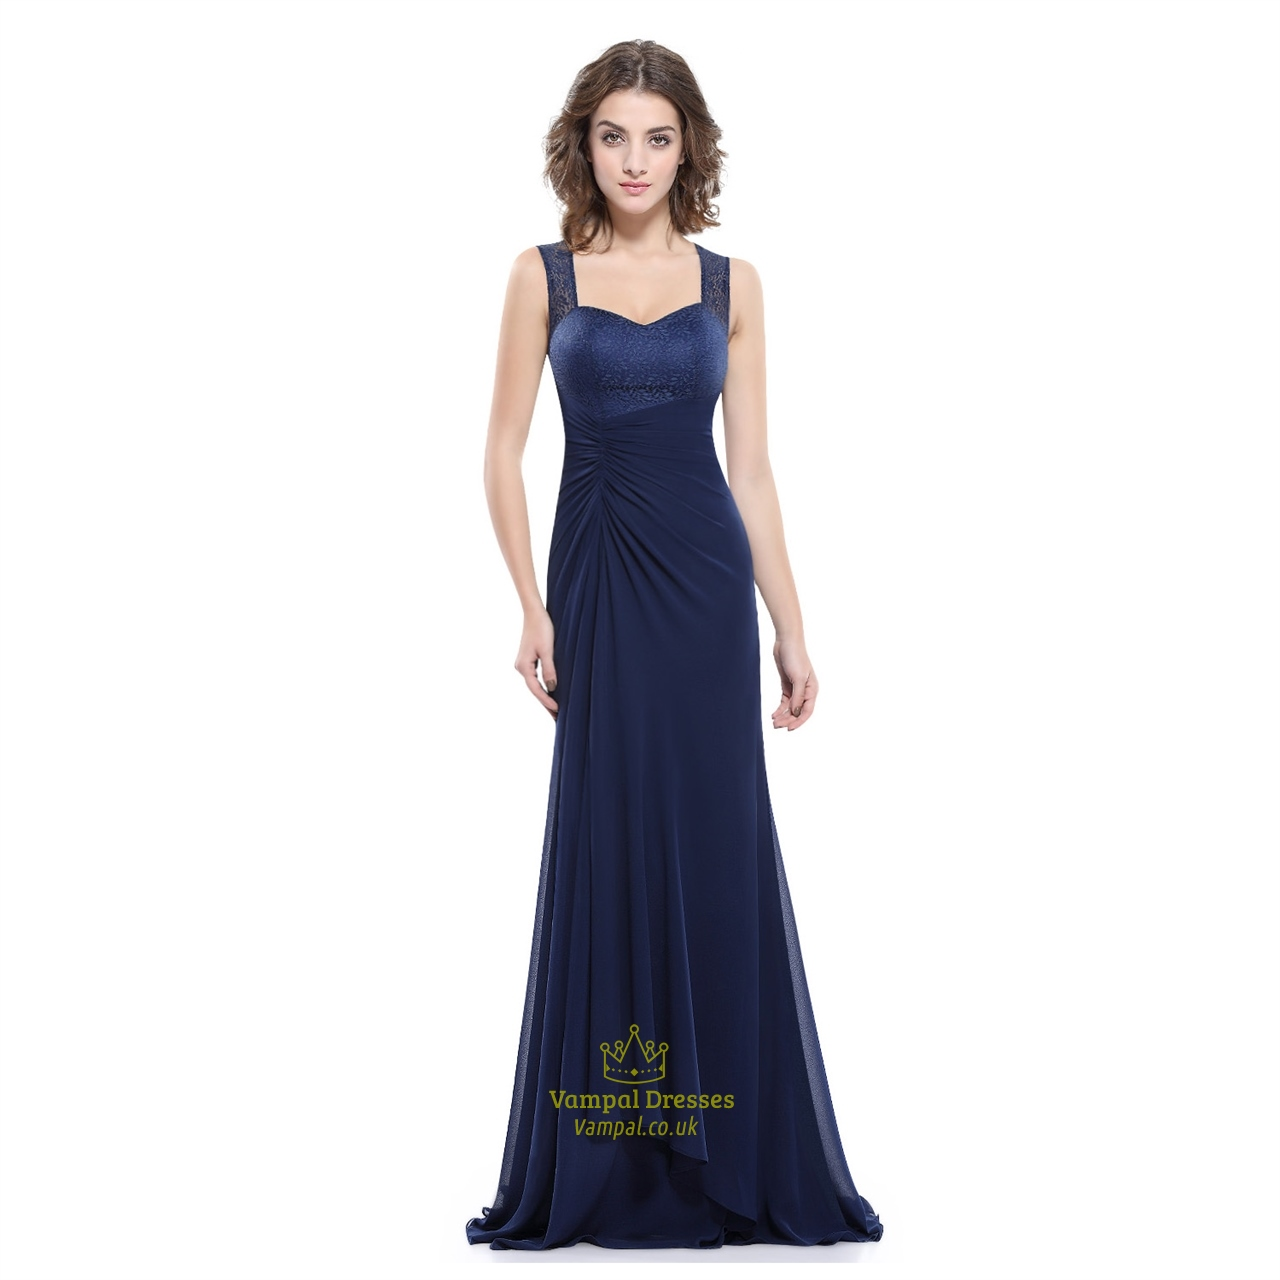 86c2c010d717 Navy Blue Chiffon Evening Dress With Lace Bodice And Shoulder Straps SKU  -AP041